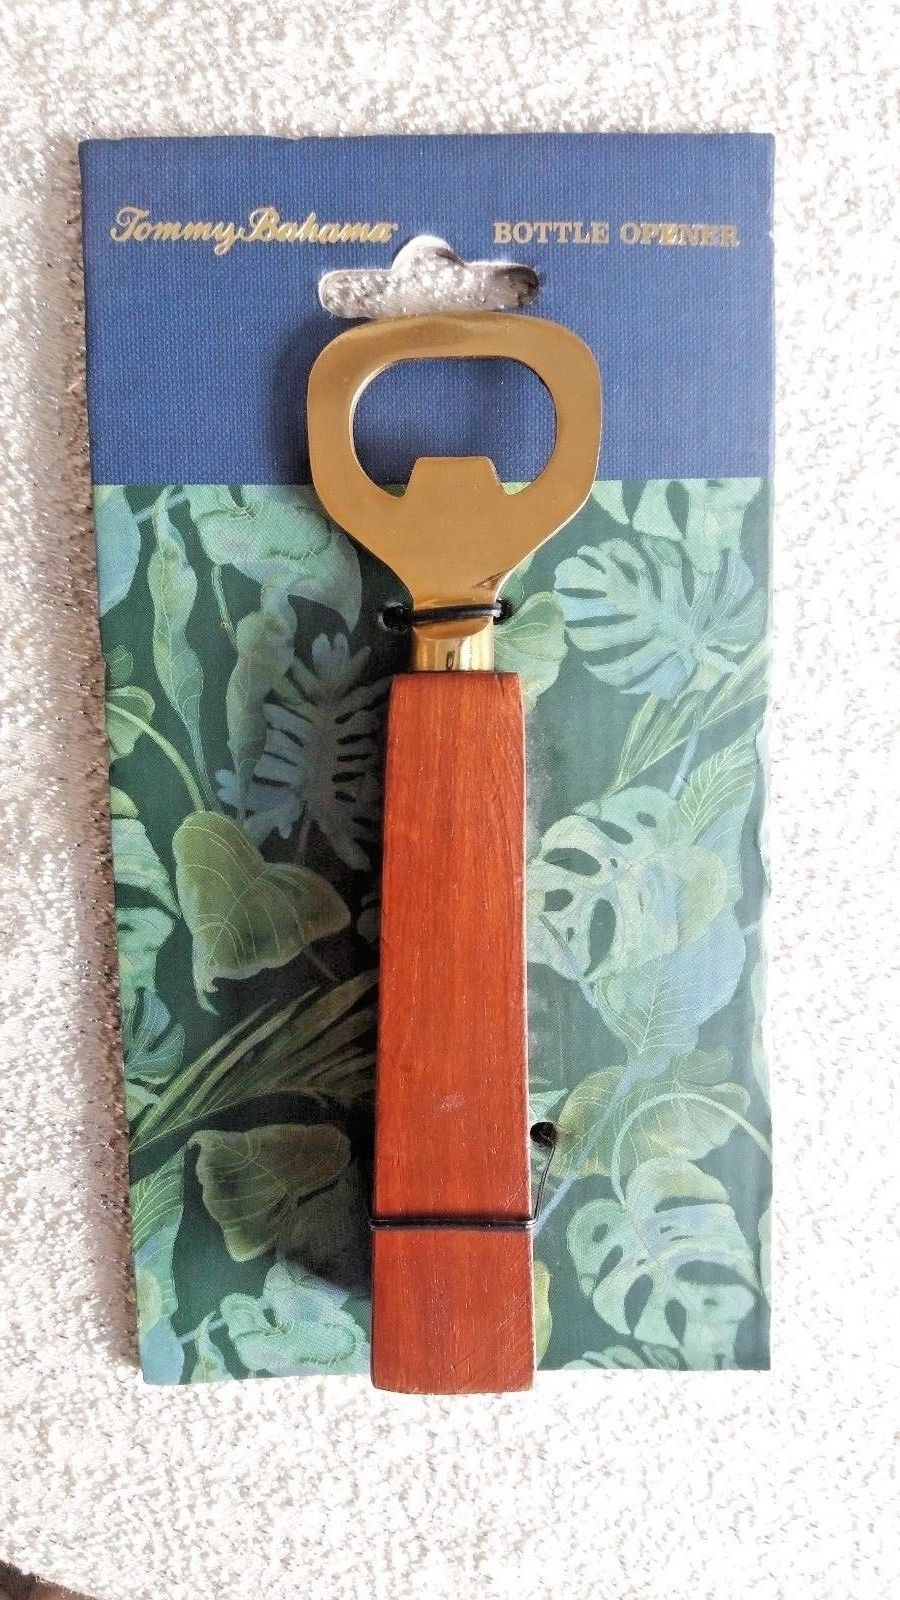 TOMMY BAHAMA Bottle Opener w Wood Handle & Brass BBQ Craft BEER Bar Tool NEW